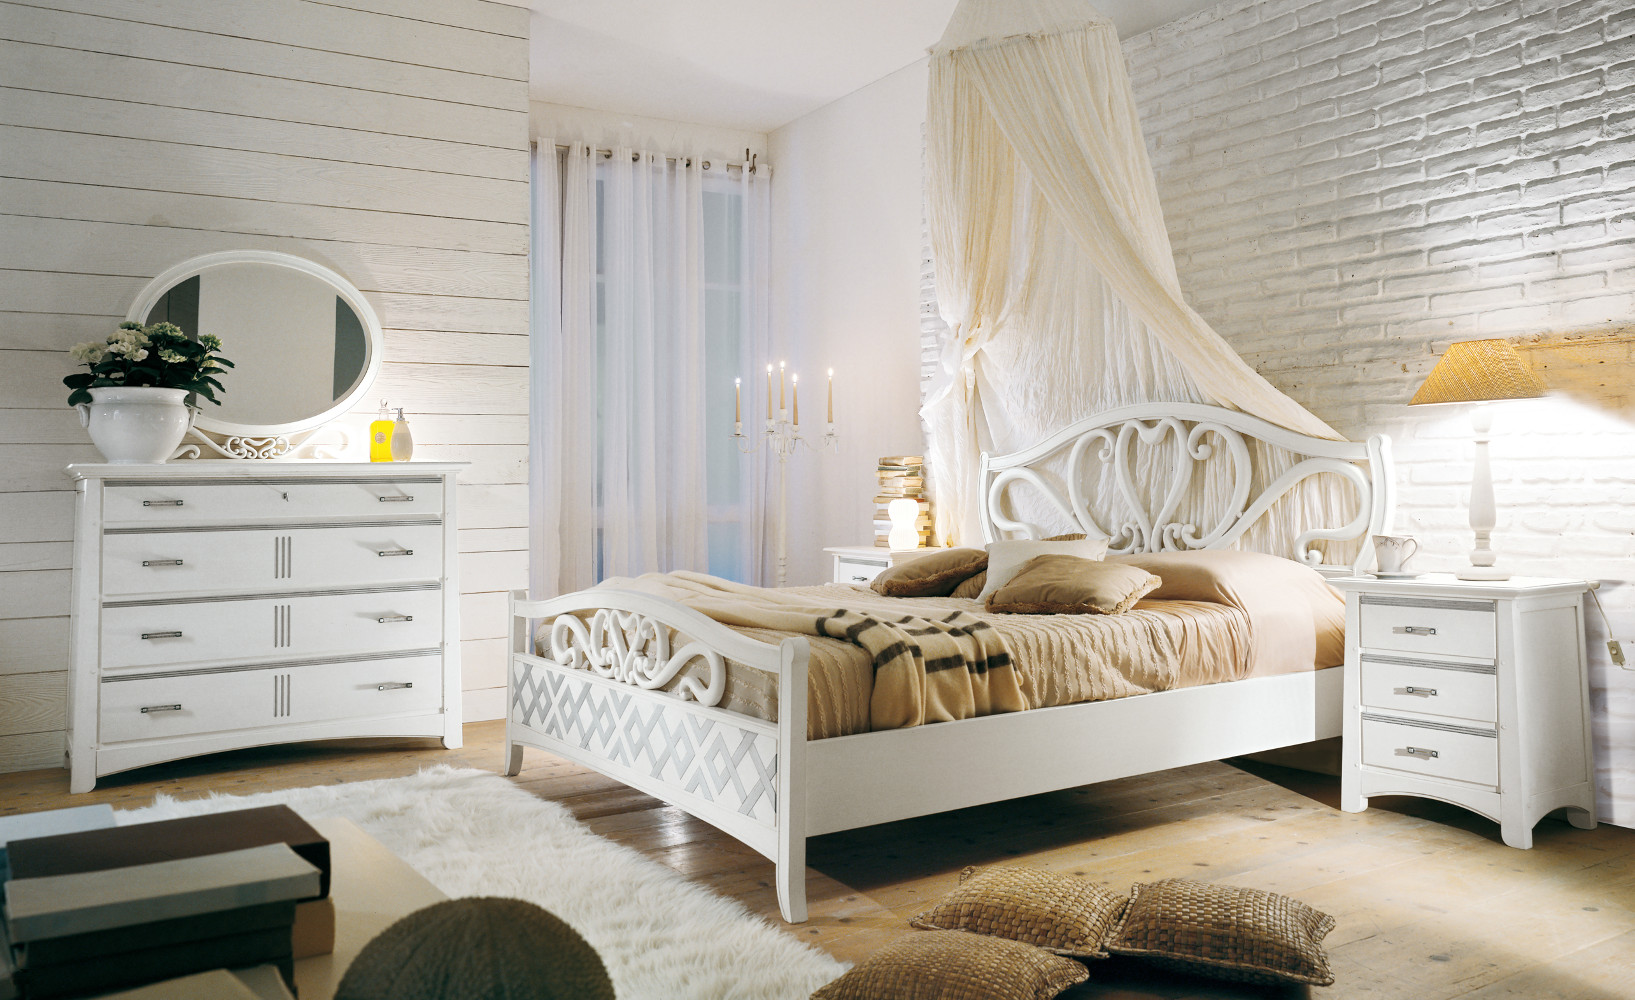 schlafzimmer einrichtungstipps f r allergiker. Black Bedroom Furniture Sets. Home Design Ideas